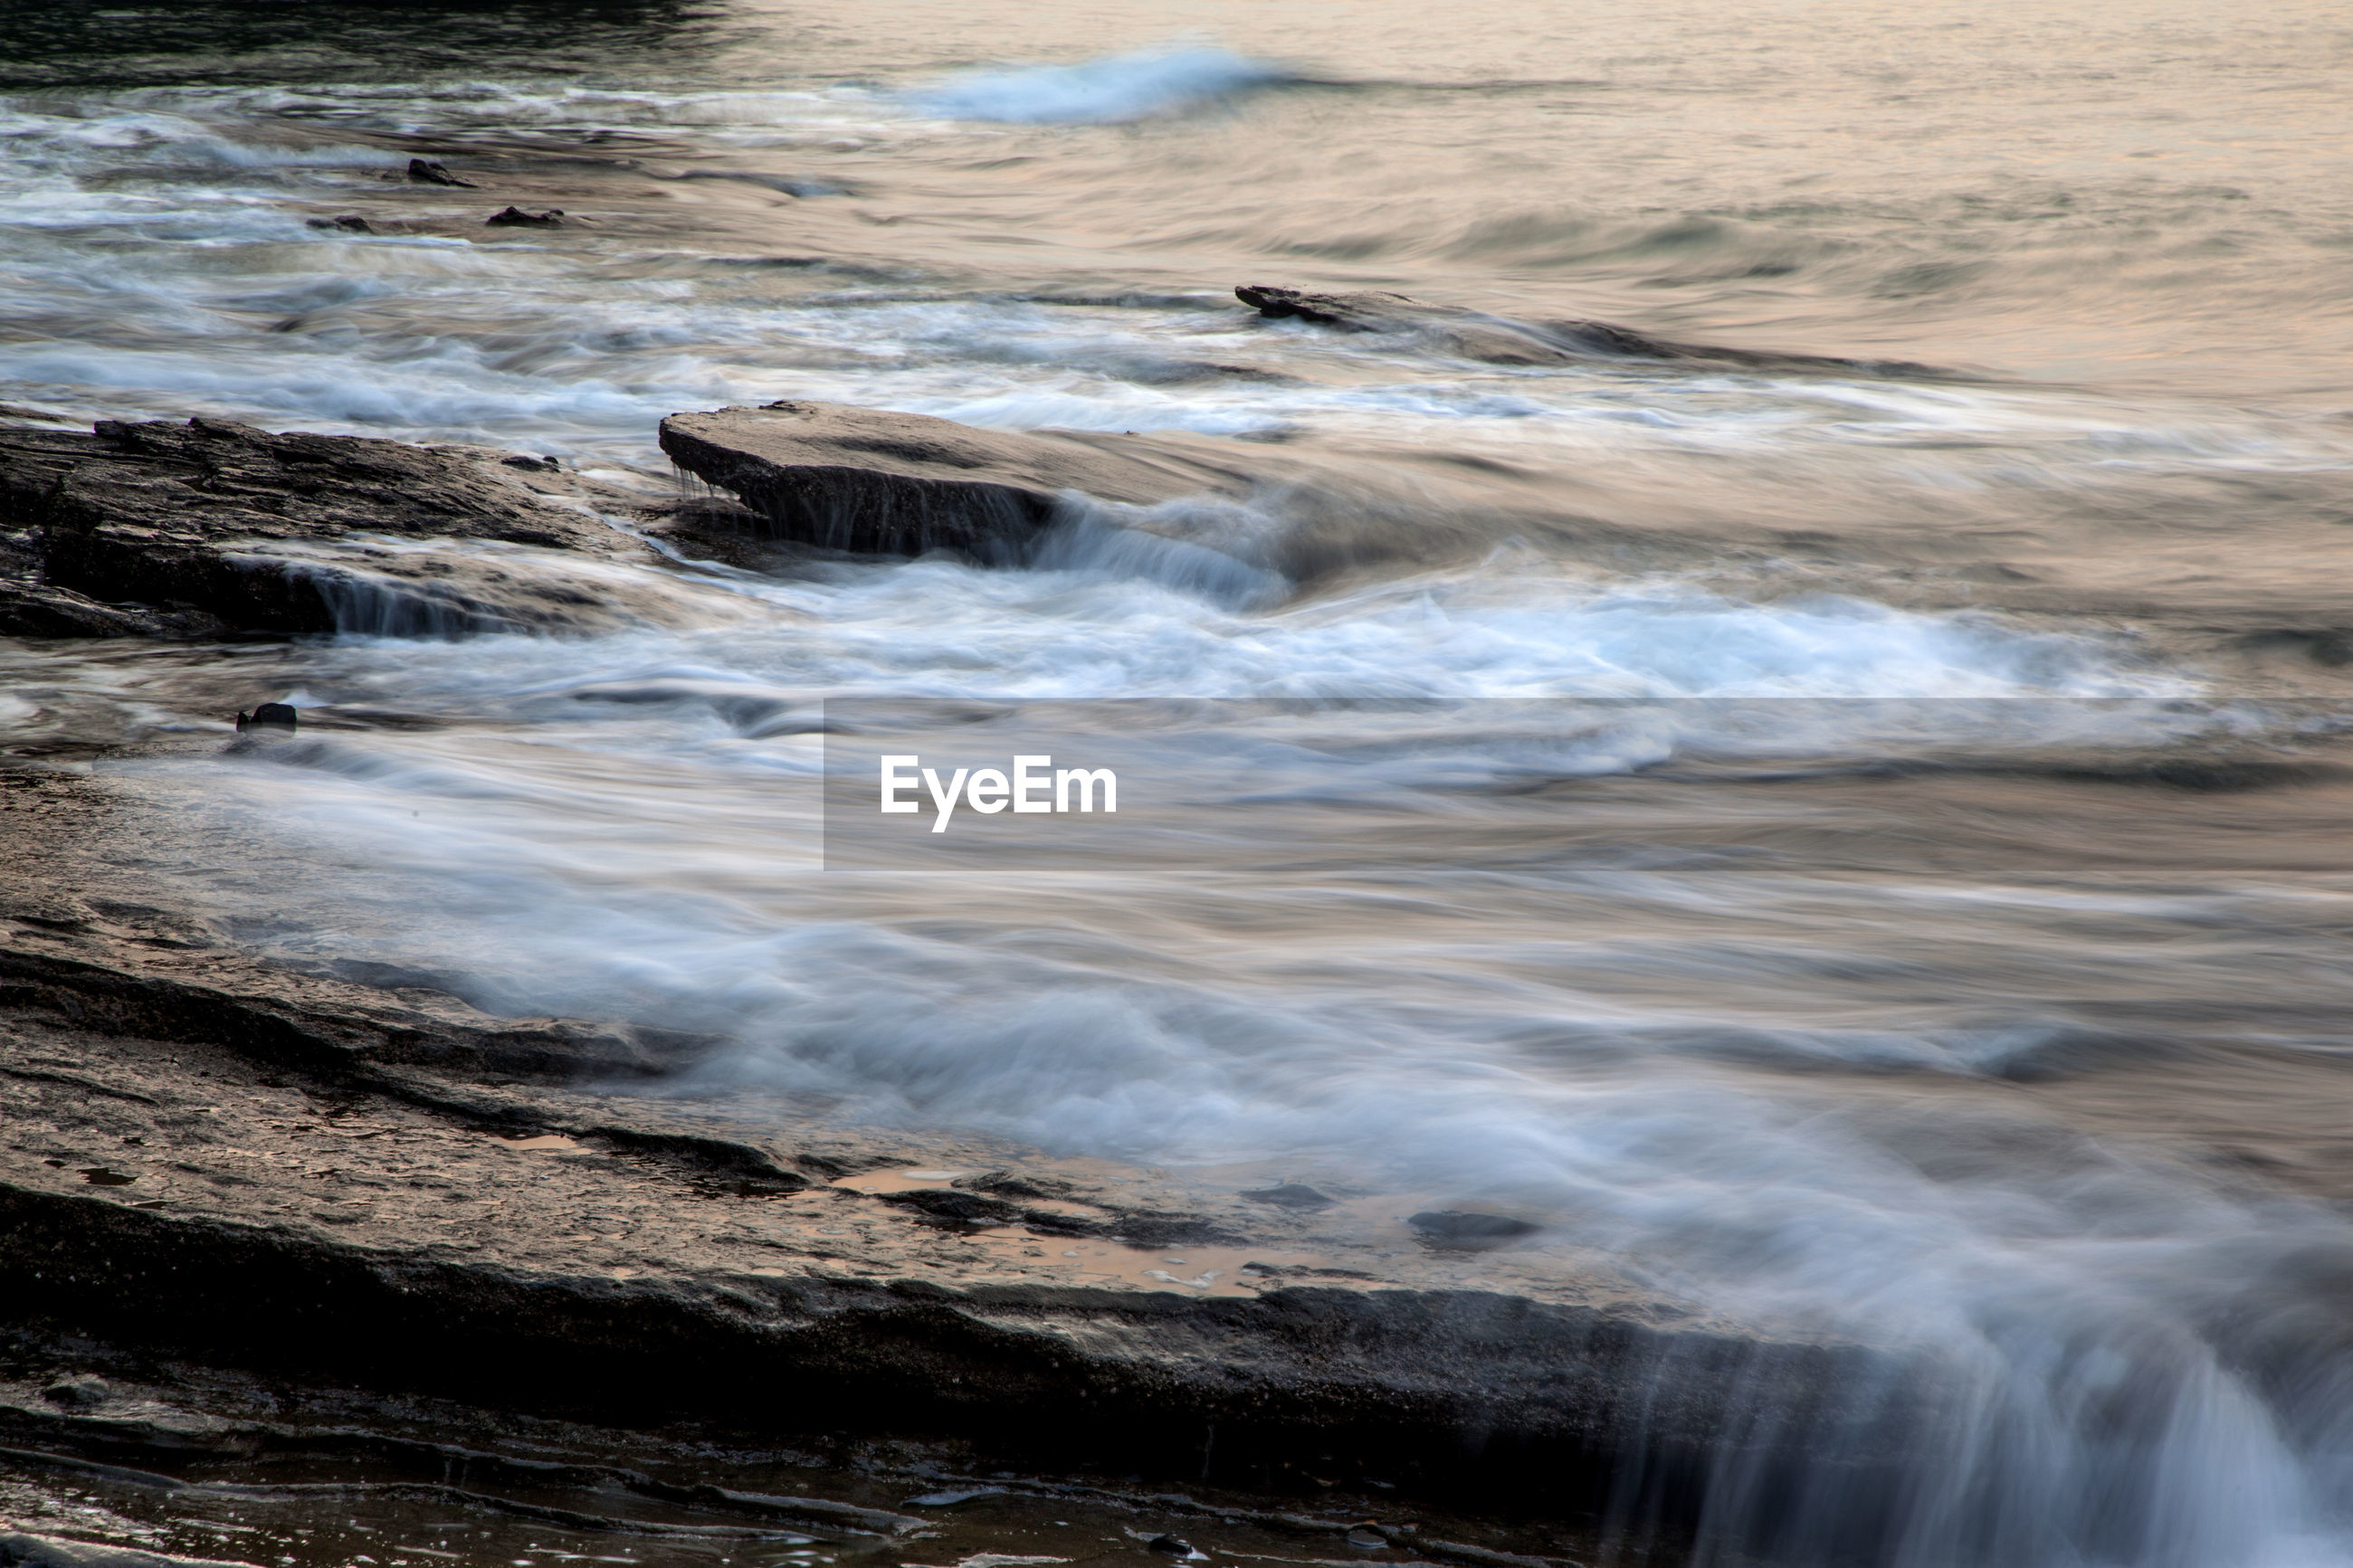 Blurred motion of waves at rocky shore